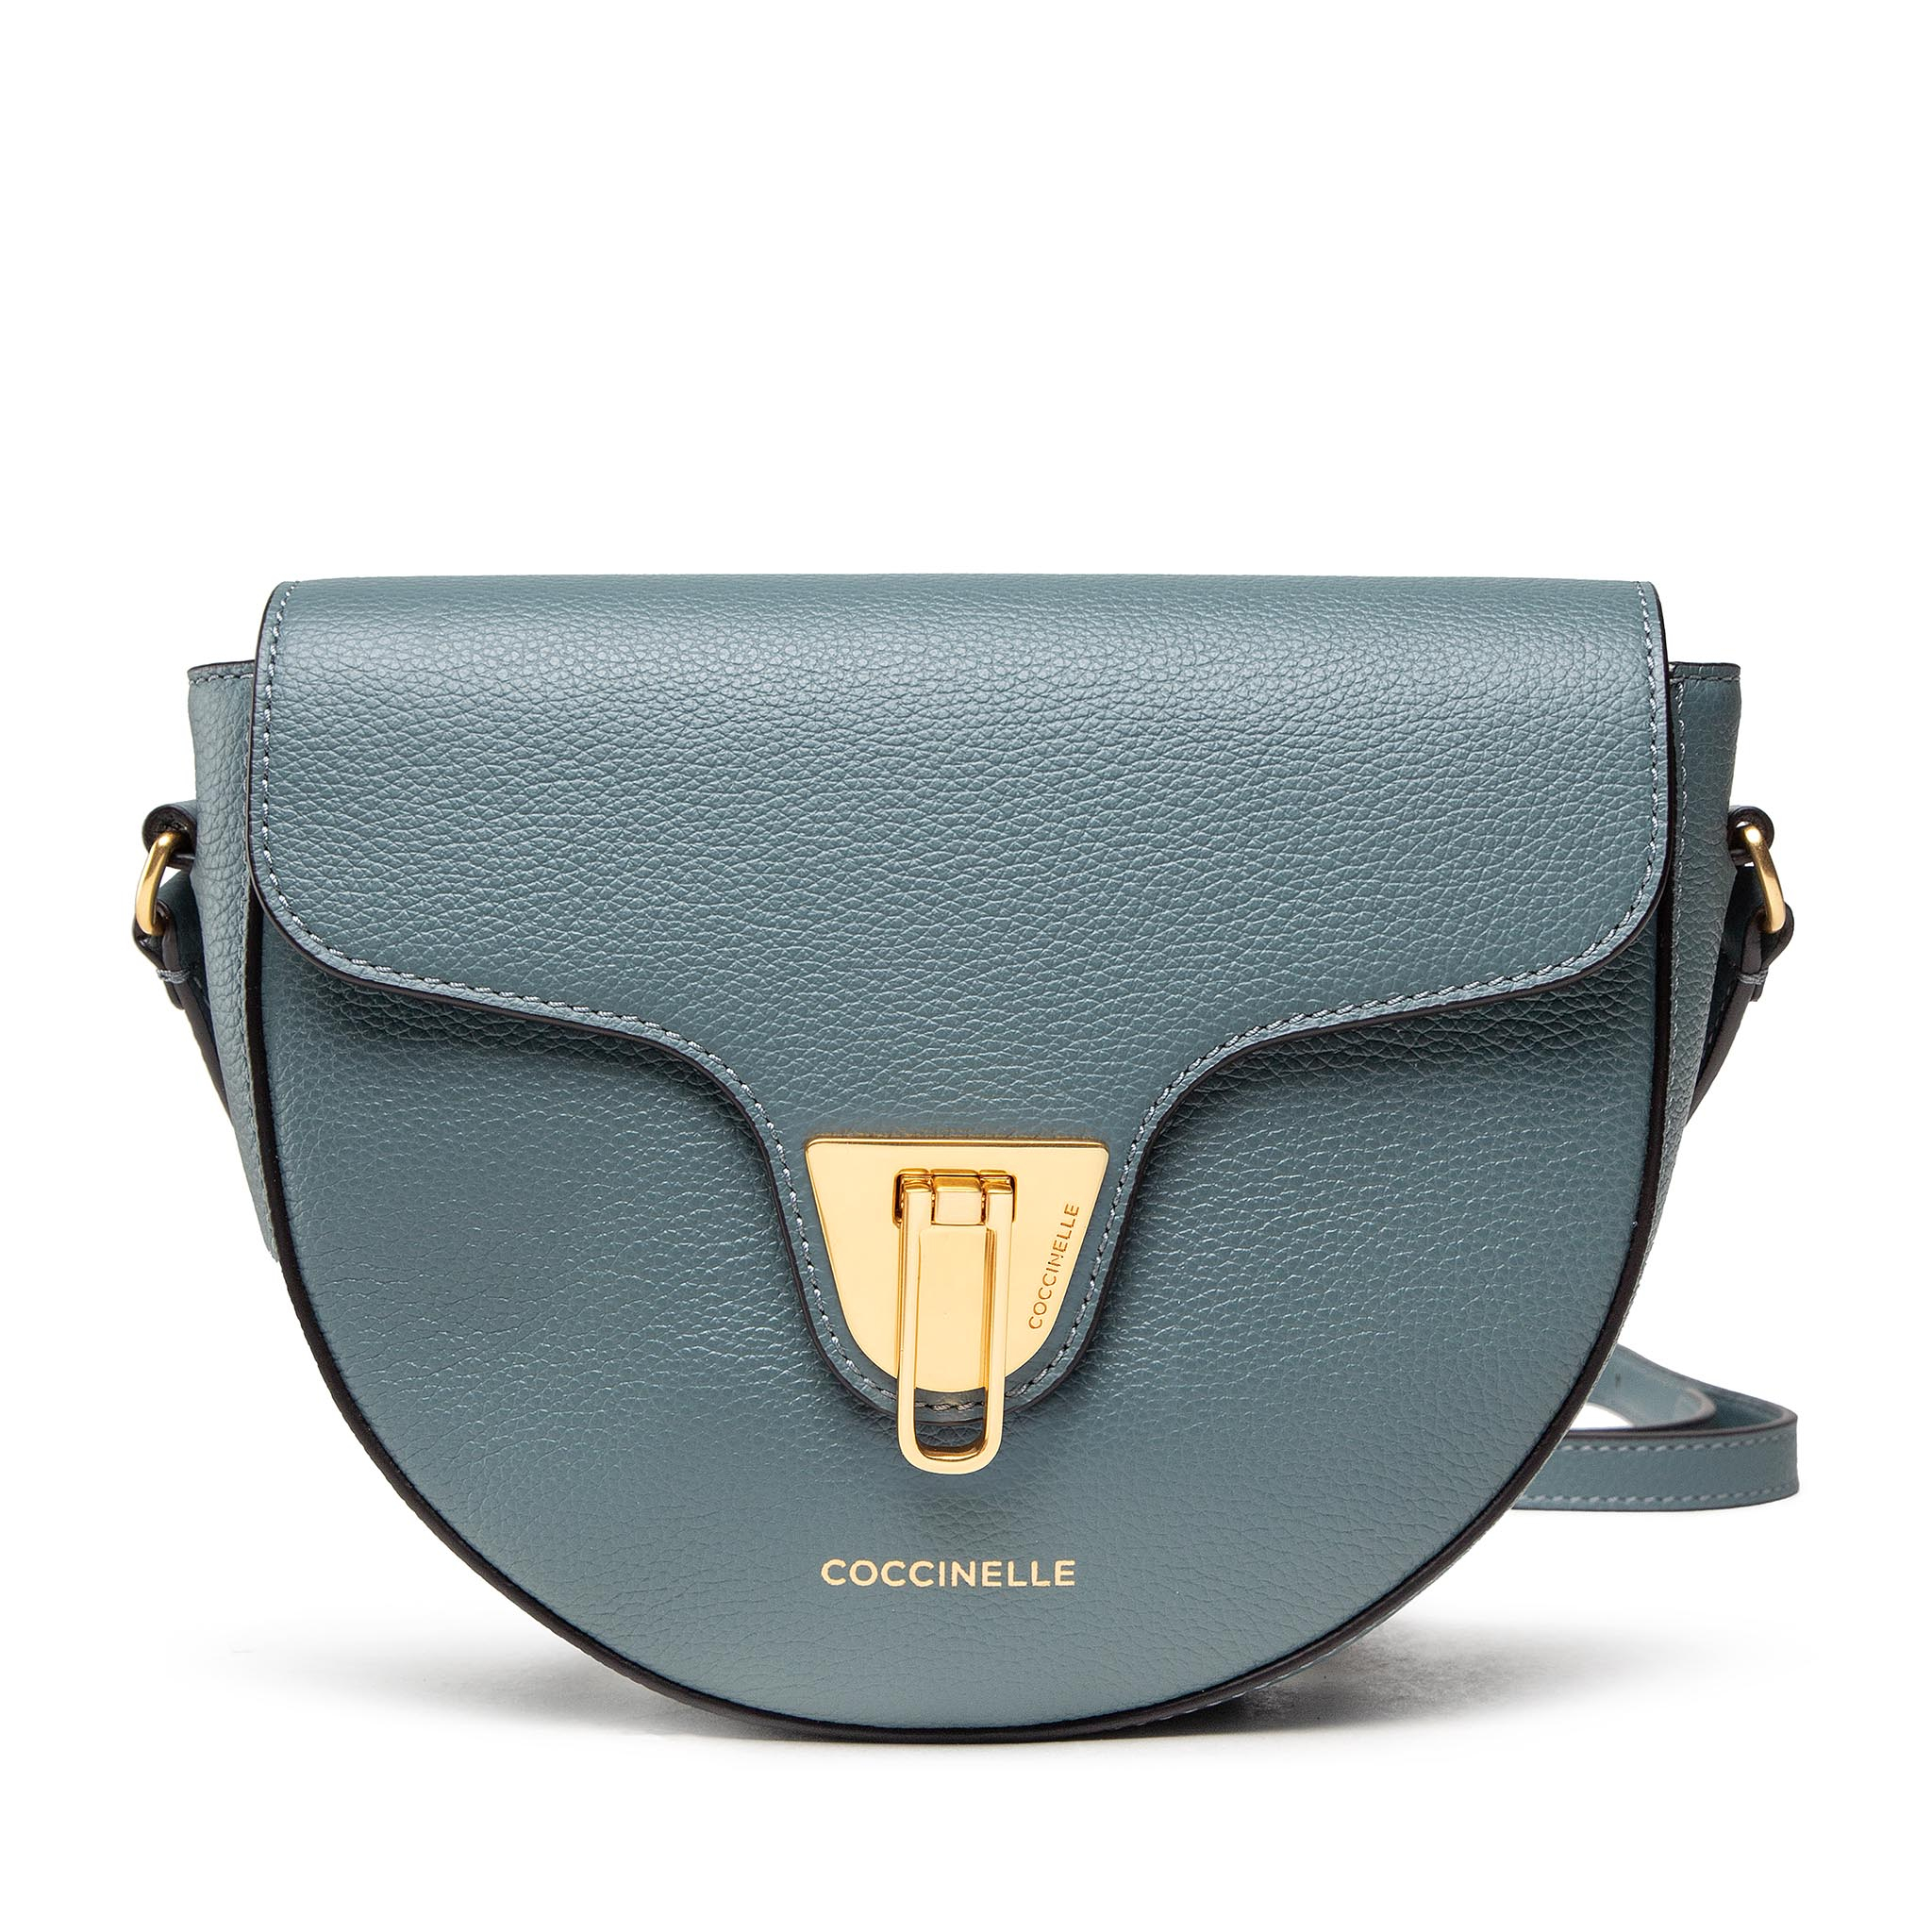 Coccinelle IF6 Beat Soft E1 IF6 15 03 01 Shark Grey